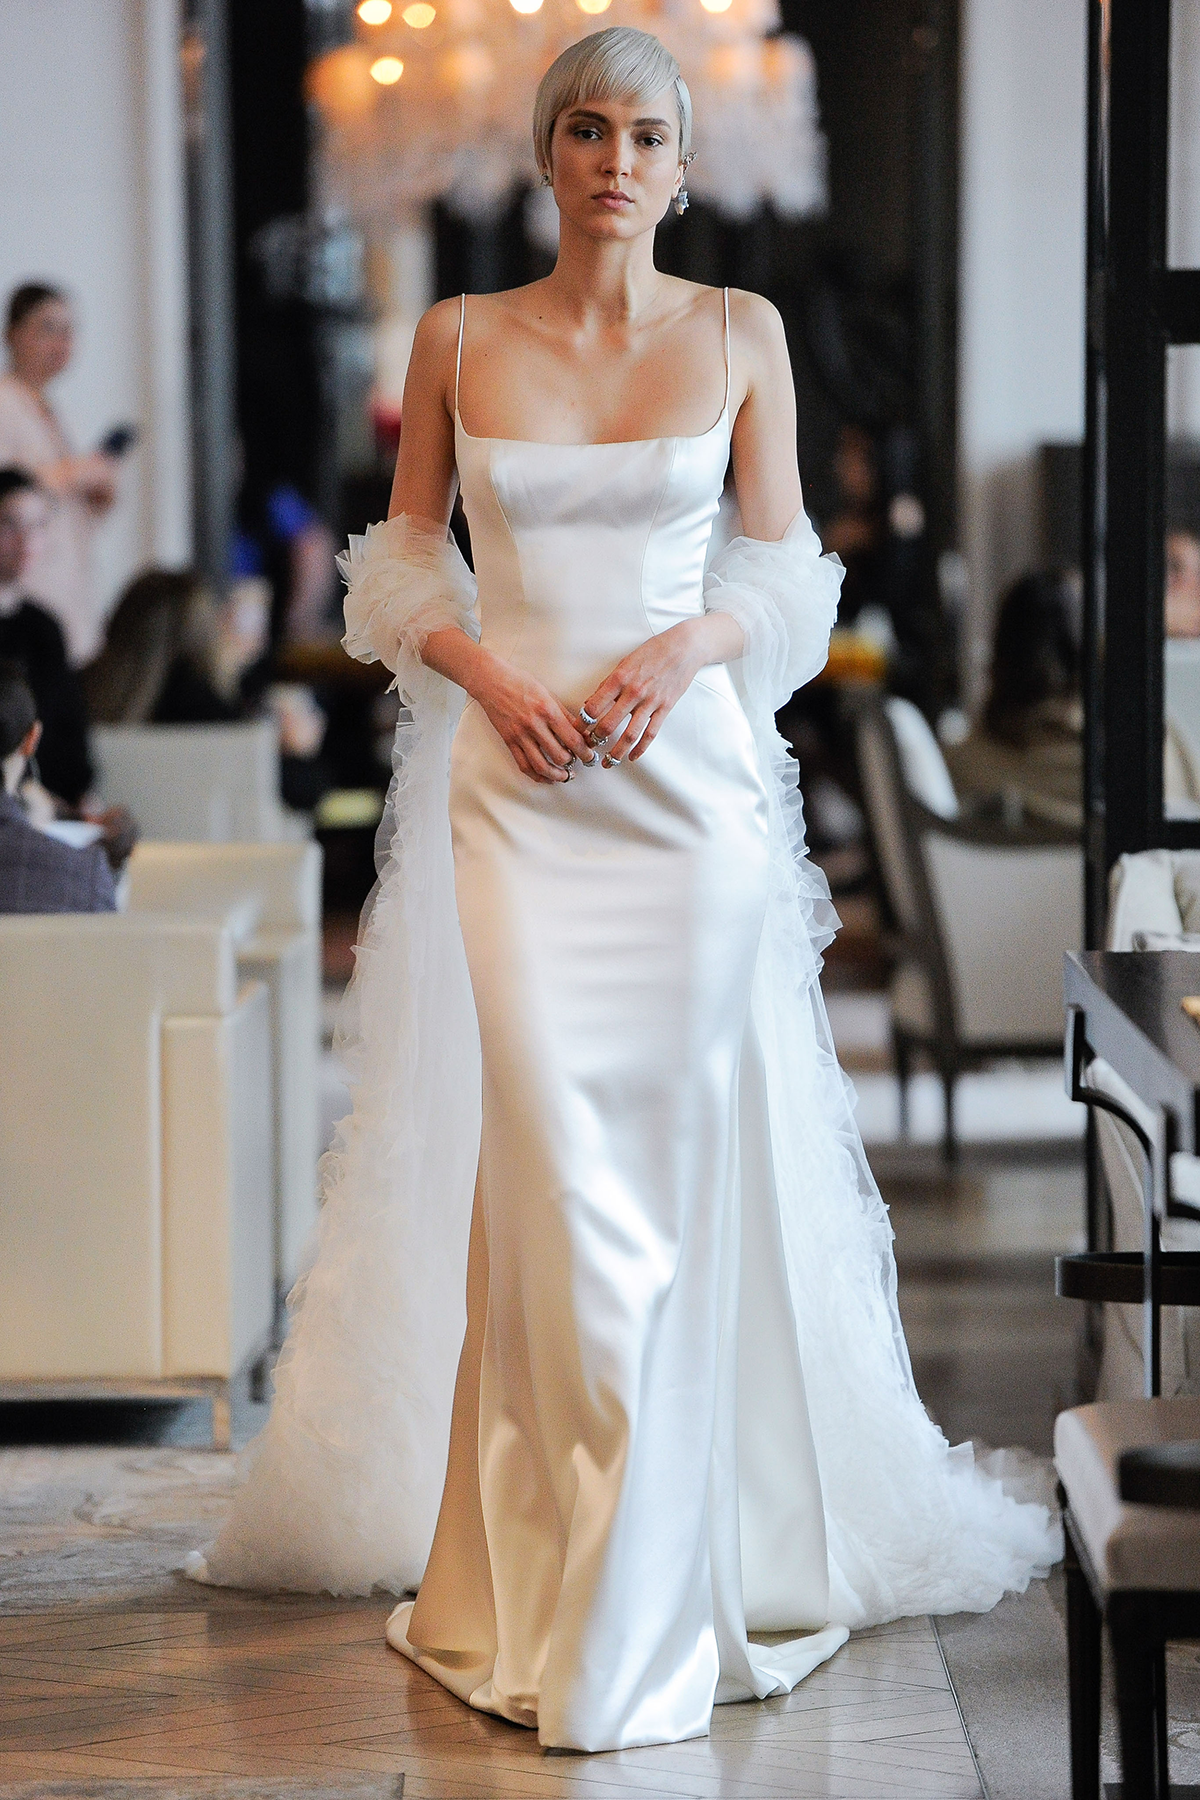 Robin gown by Ines di Santo.  Photo courtesy of First View.